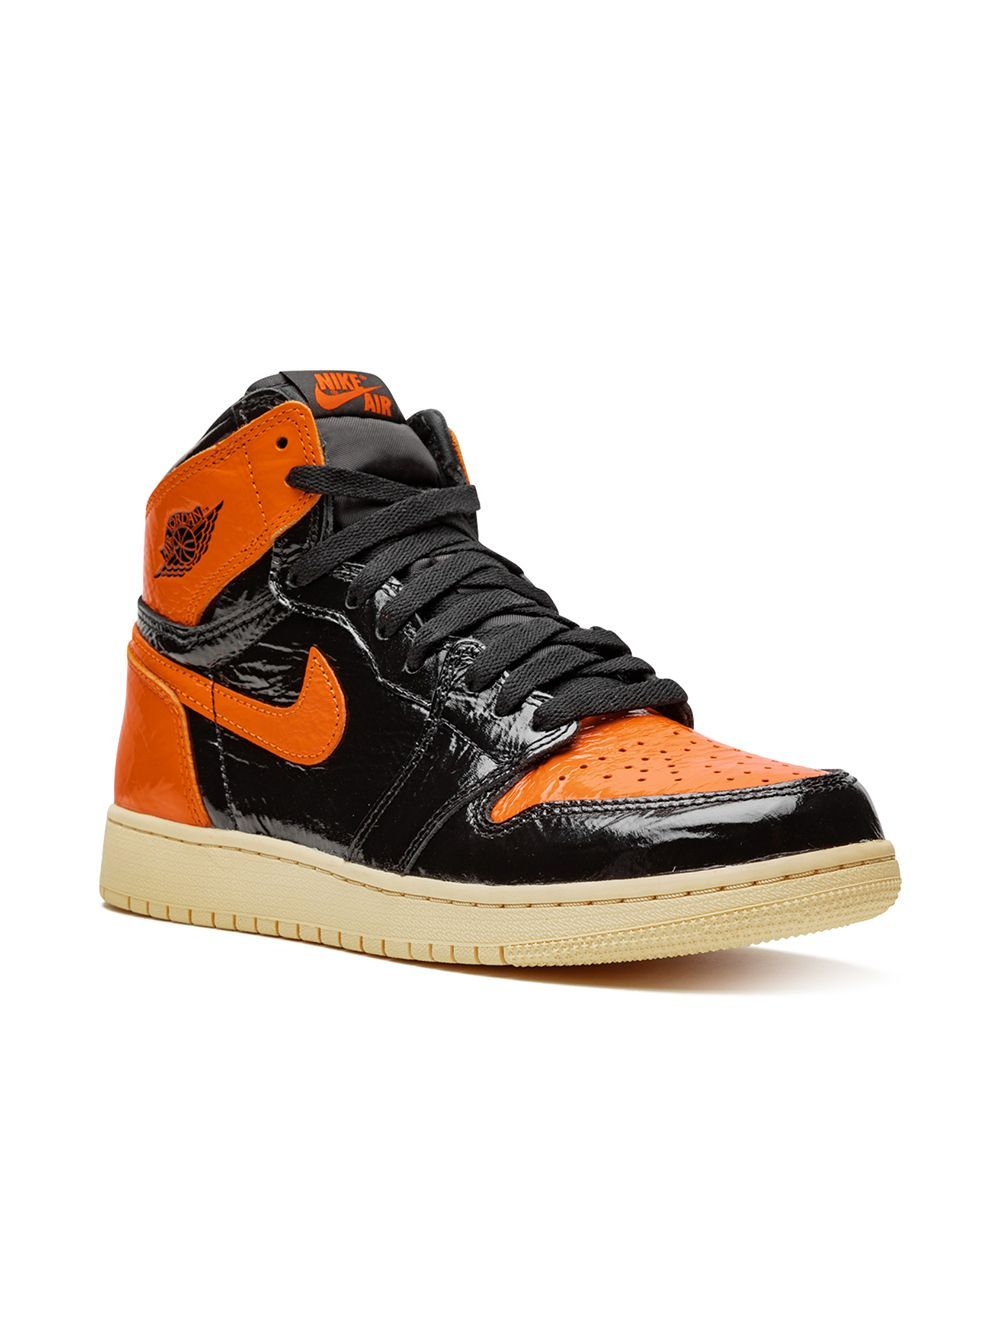 Jordan Air Jordan 1 Retro High Og Gs Sneaker In 2020 Air Jordans